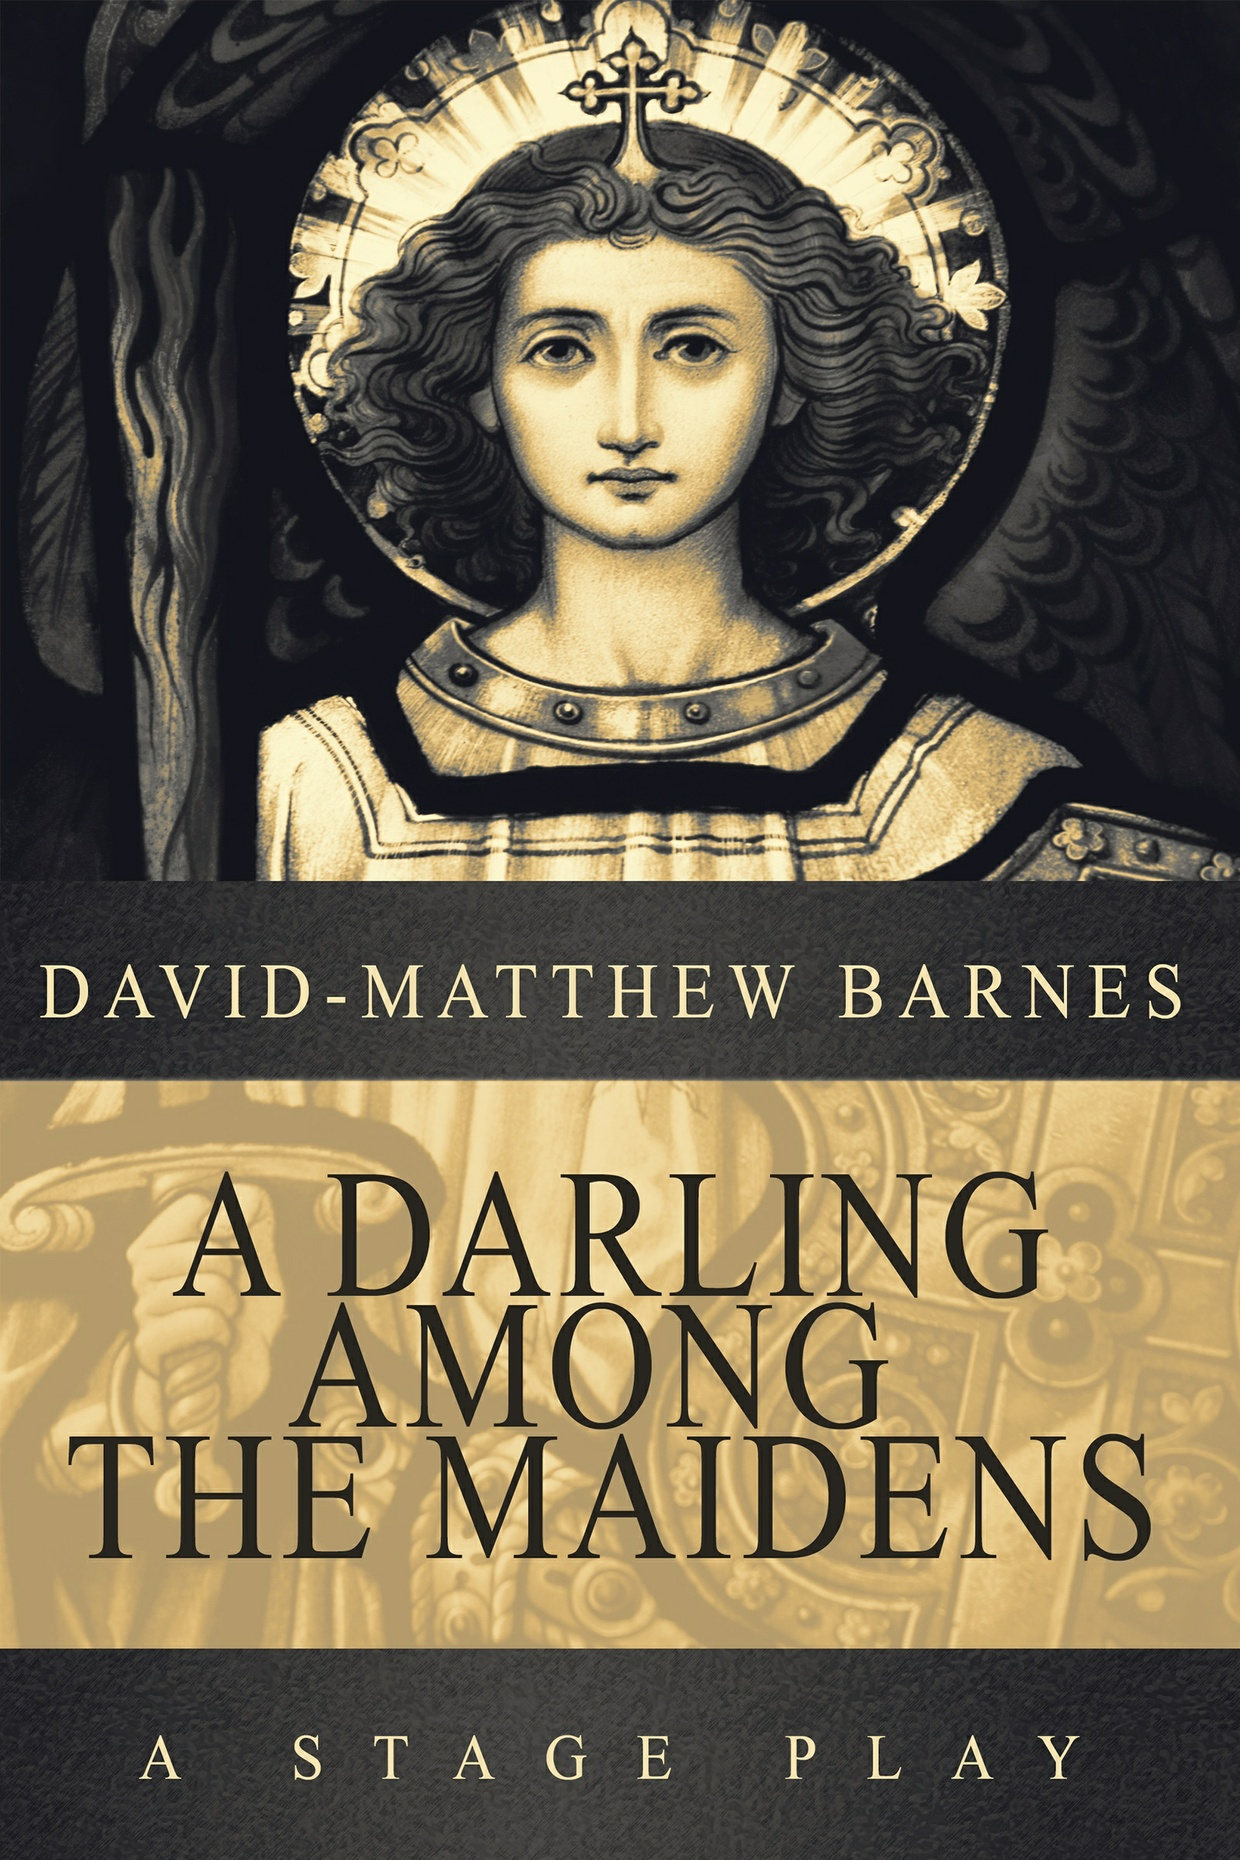 A Darling Among the Maidens